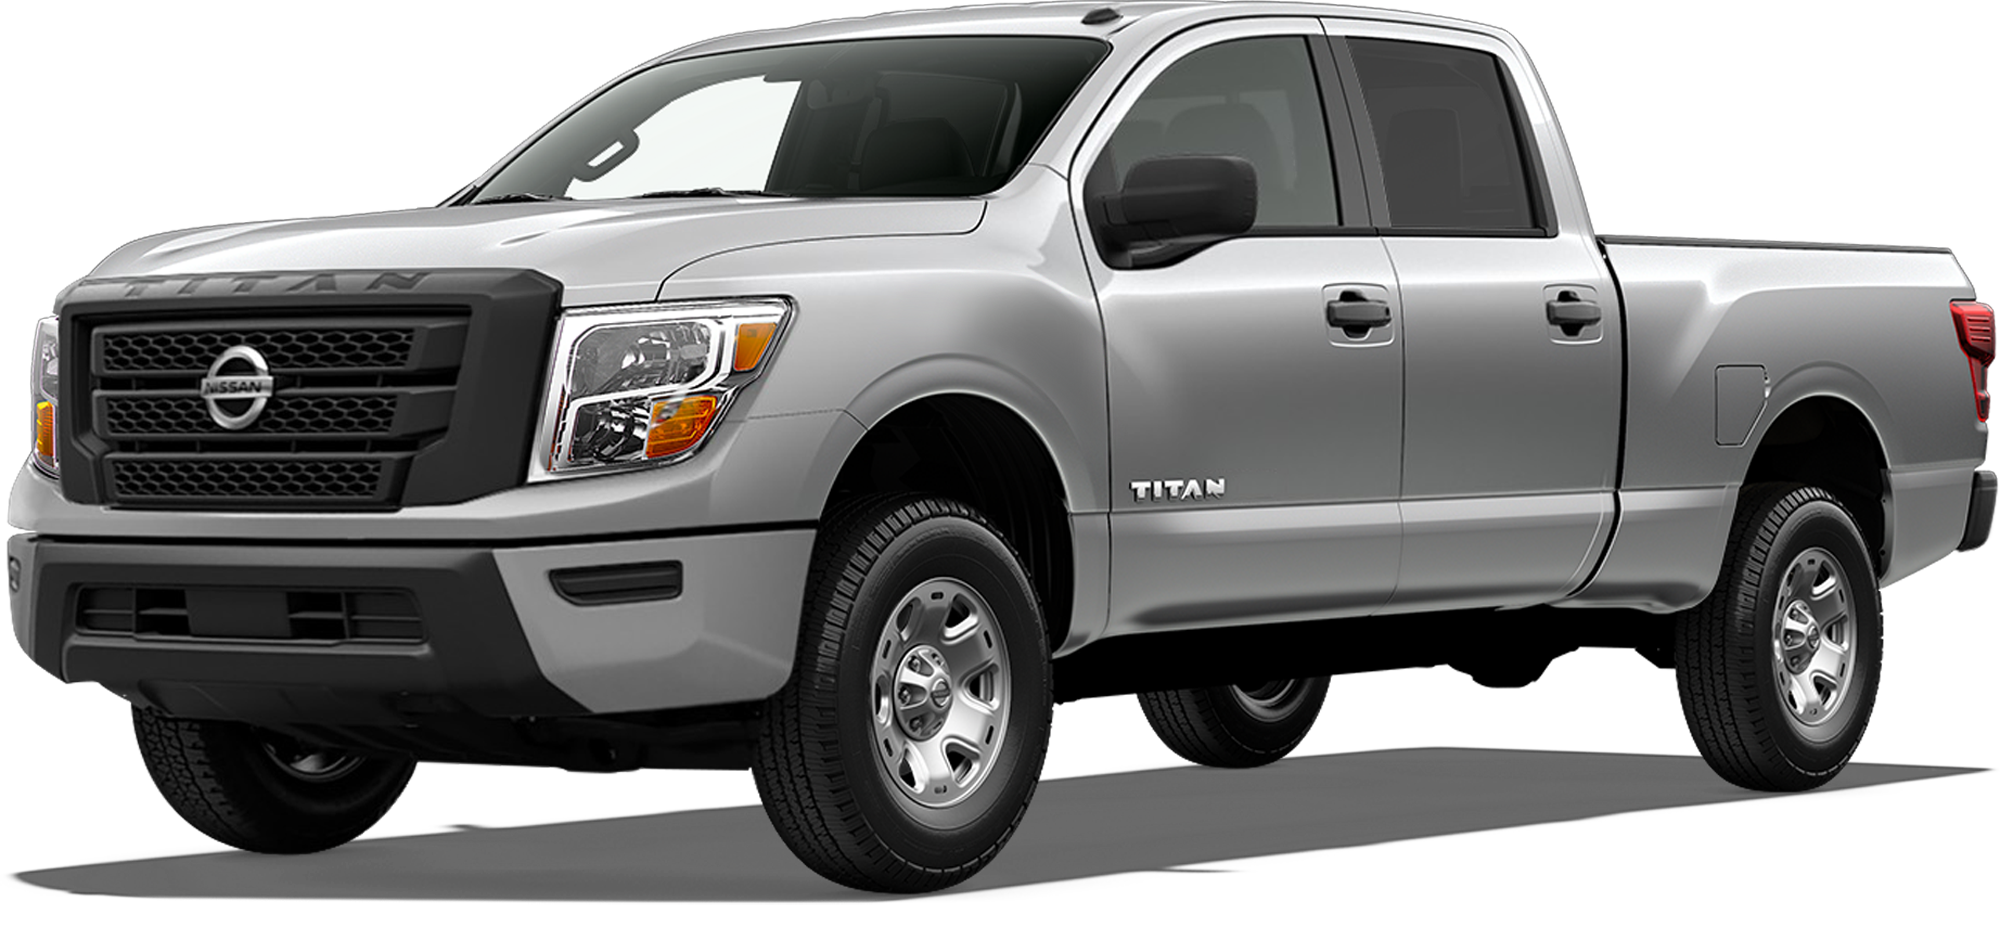 2021 nissan titan incentives, specials & offers in lake